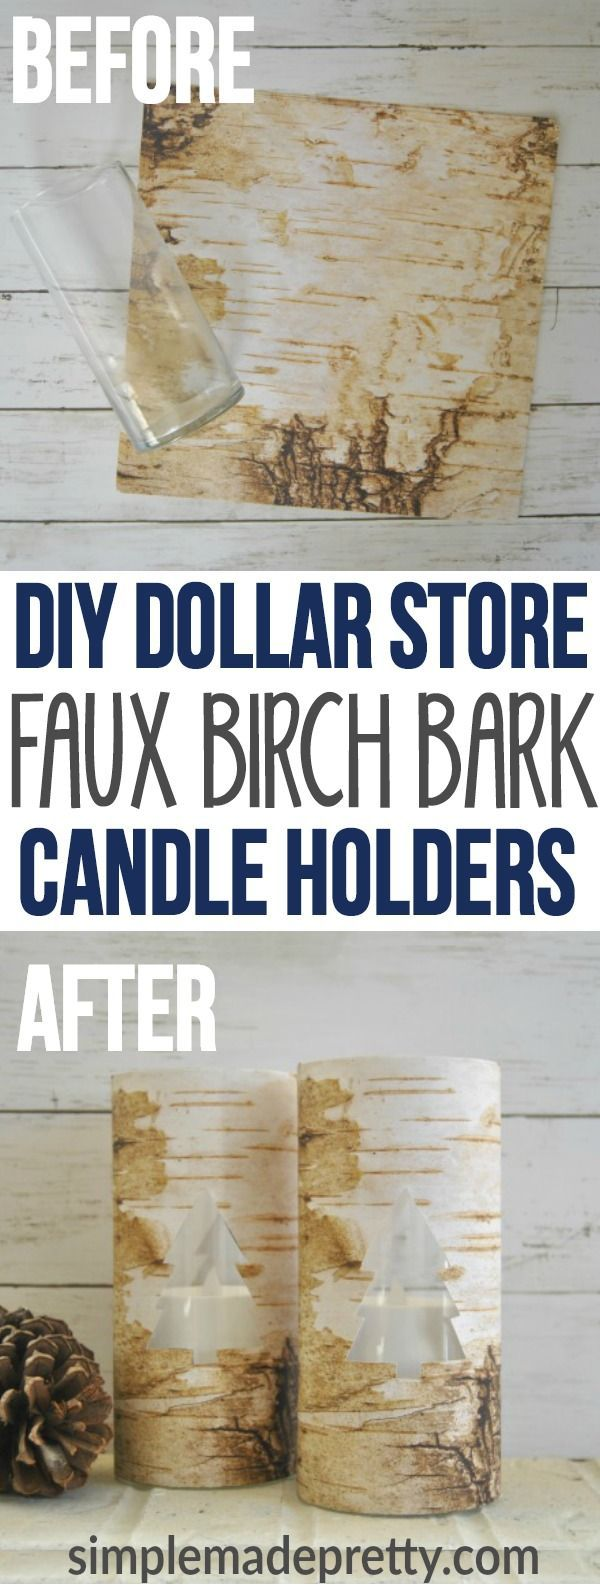 I made these Dollar Store DIY home decor vases as a Christmas Craft idea to give as gifts. These are the best dollar store DIY candle holder decorations I've found online! I love how this DIY adds rustic decor to our living room to create farmhouse style. via @SMPblog